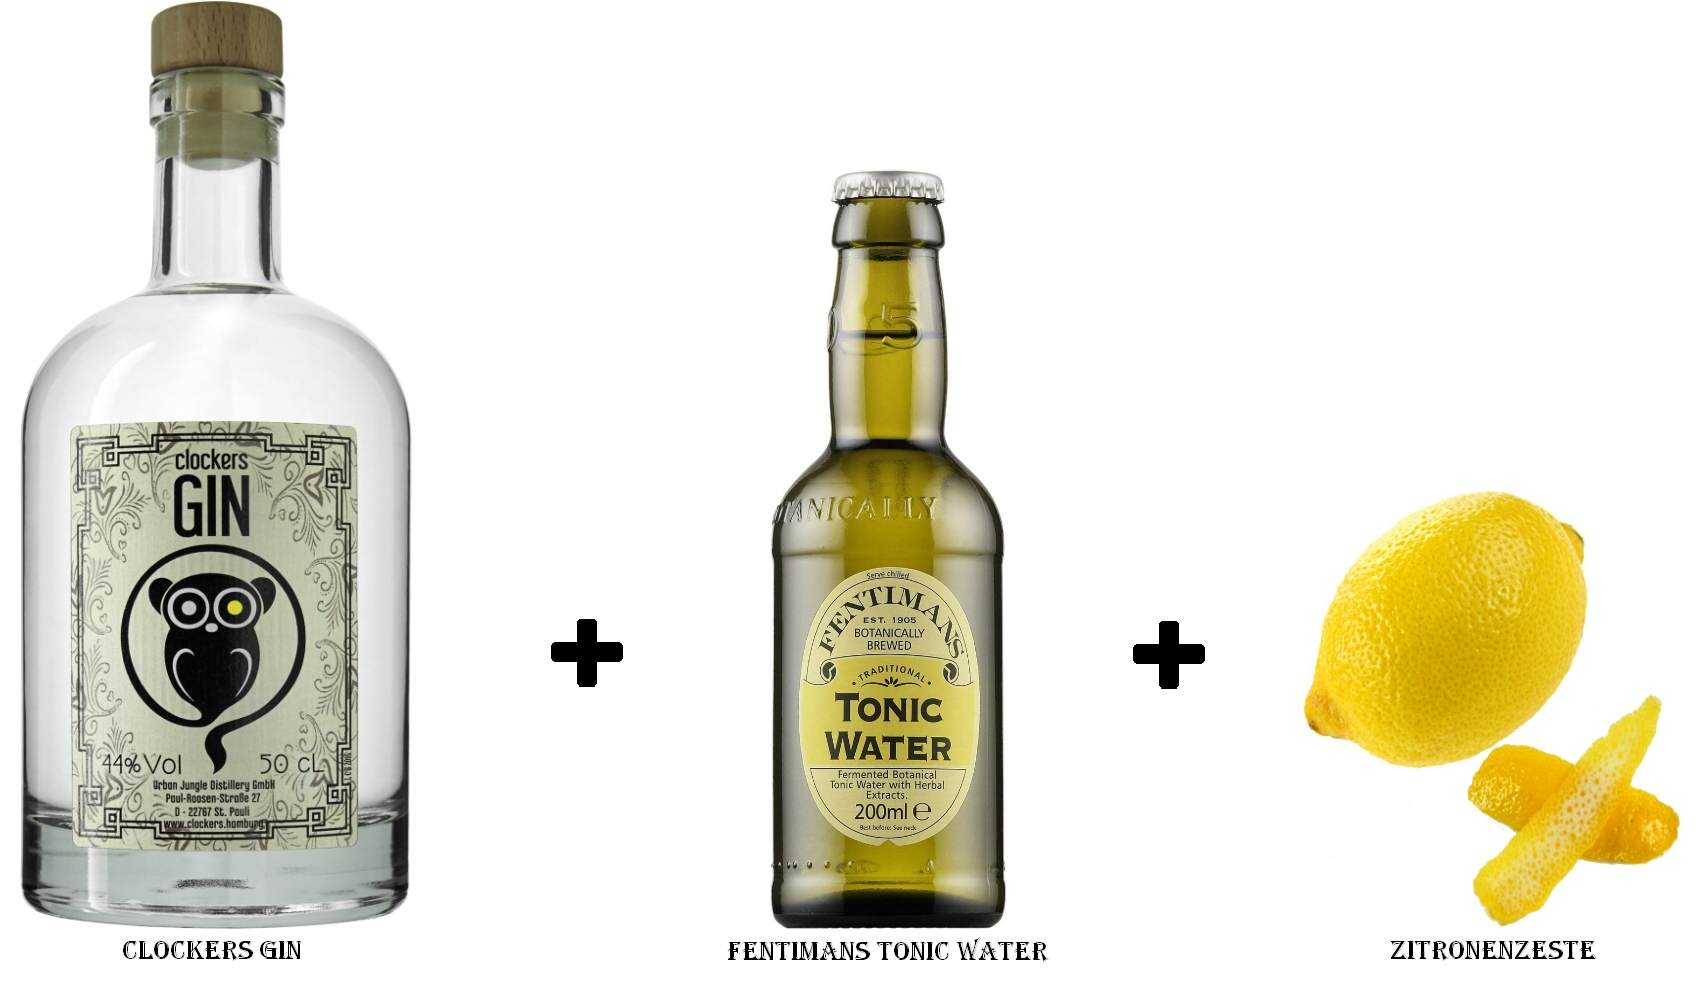 Clockers Gin + Fentimans Tonic Water + Zitronenzeste